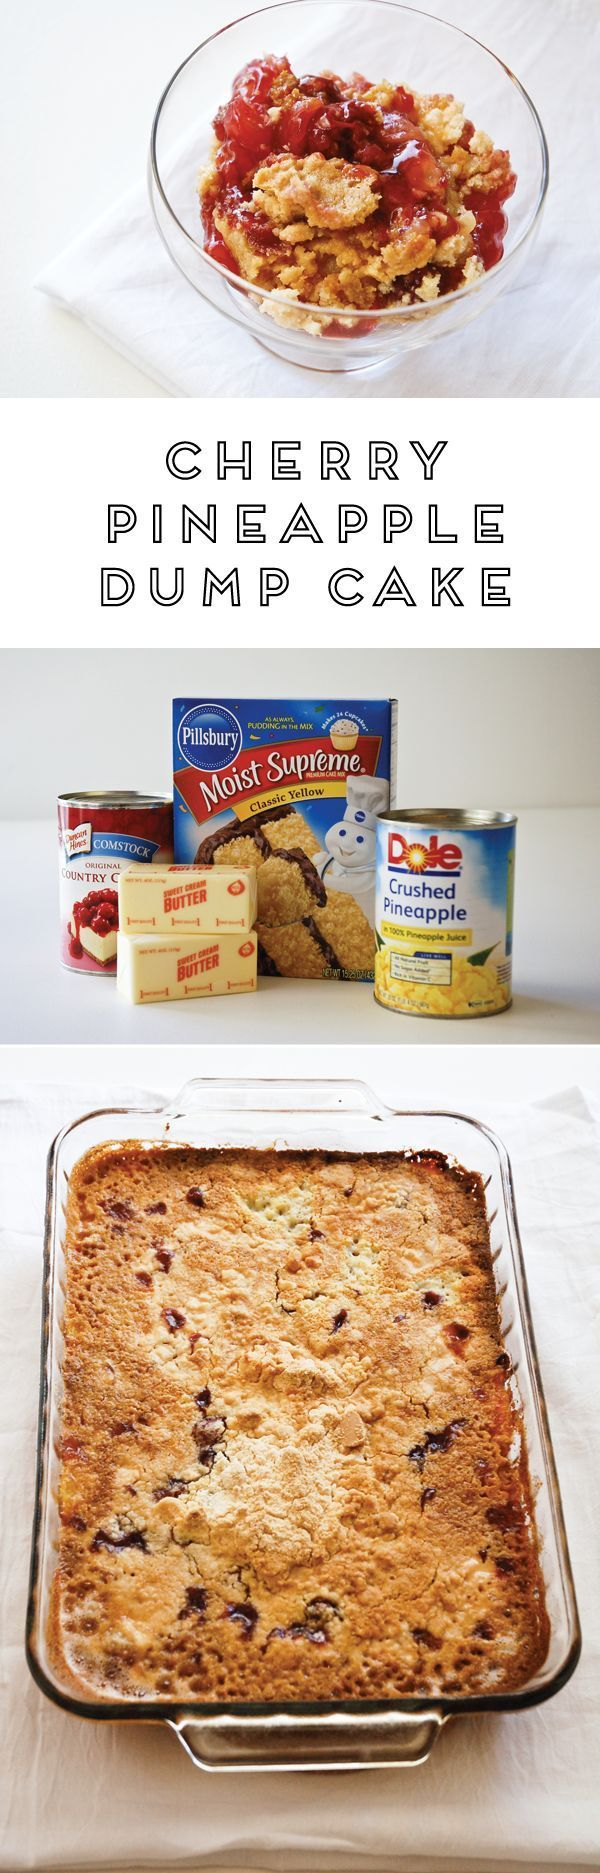 If you're looking for easy dessert, you've found the best! The Cherry Pineapple dump cake recipe is so easy to make and it's super delicious. Always a crowd pleaser!